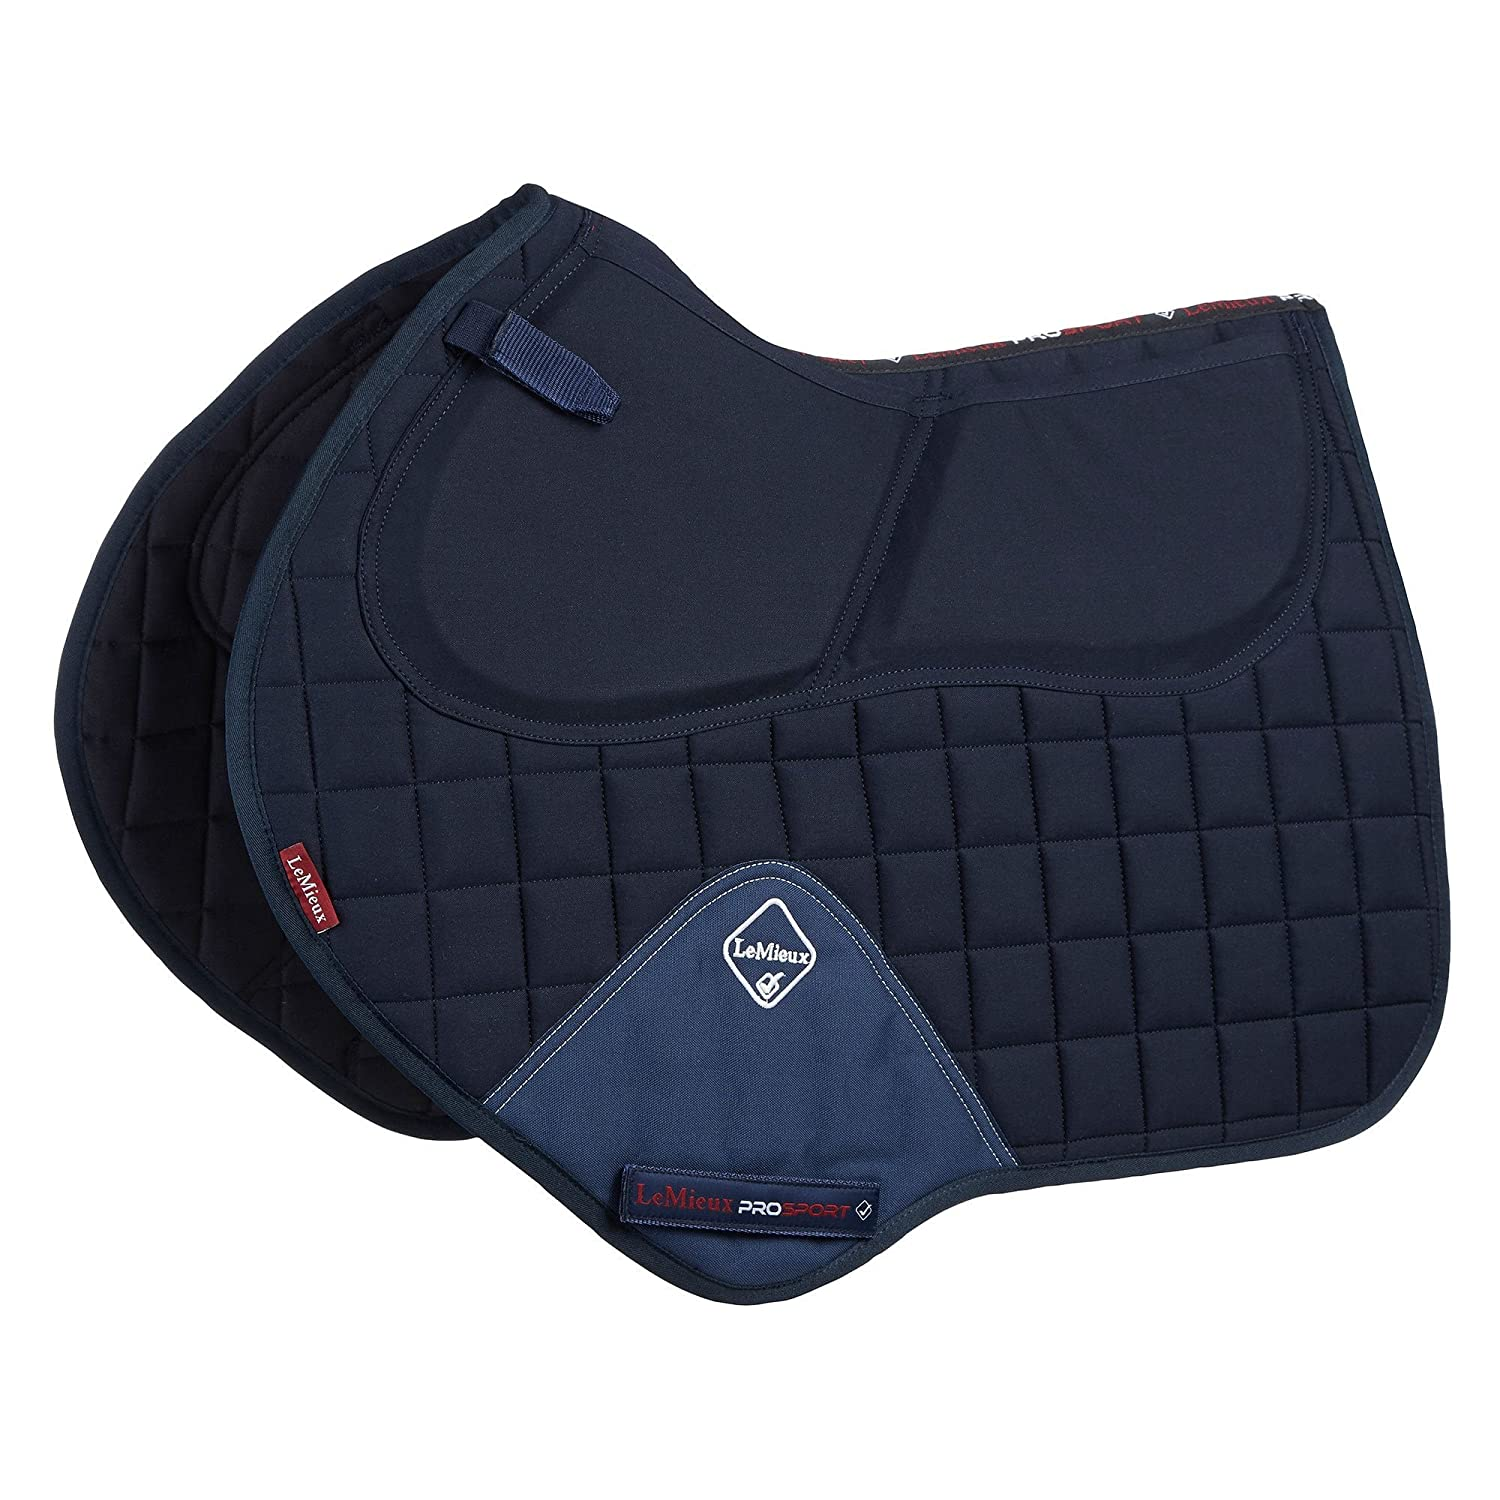 Navy LargeLeMieux Sport ProSorb System Close Contact Square Saddle Cloth